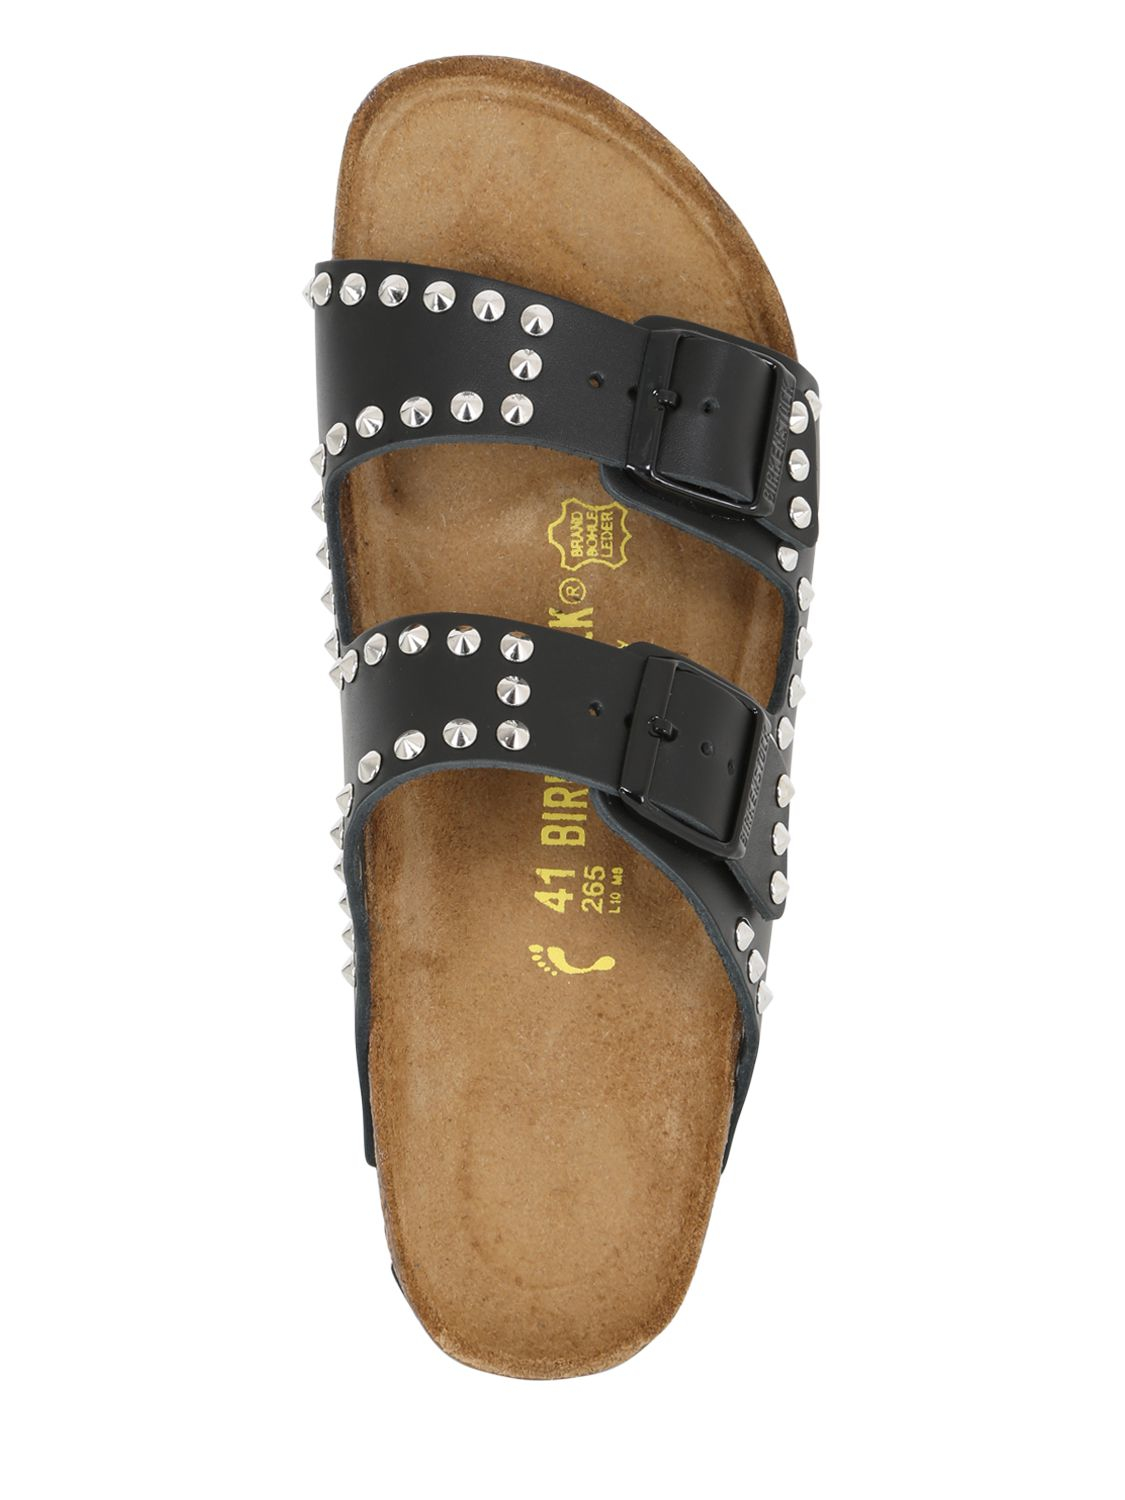 Lyst Birkenstock Arizona Studded Leather Slide Sandals